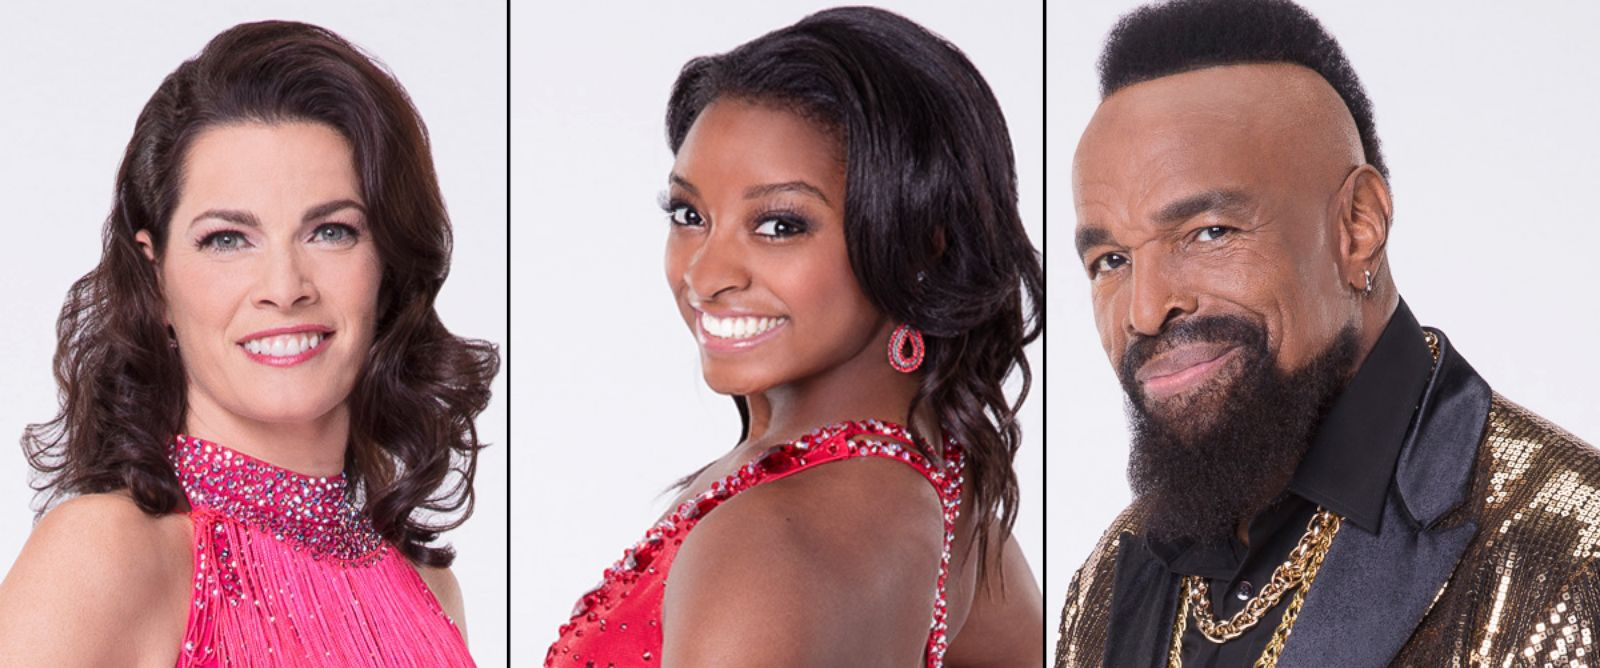 ABC-Nancy-Kerrigan-Simone-Biles-Mr-T-DWTS1-ml-170228_12x5_1600_1488380082825.jpg